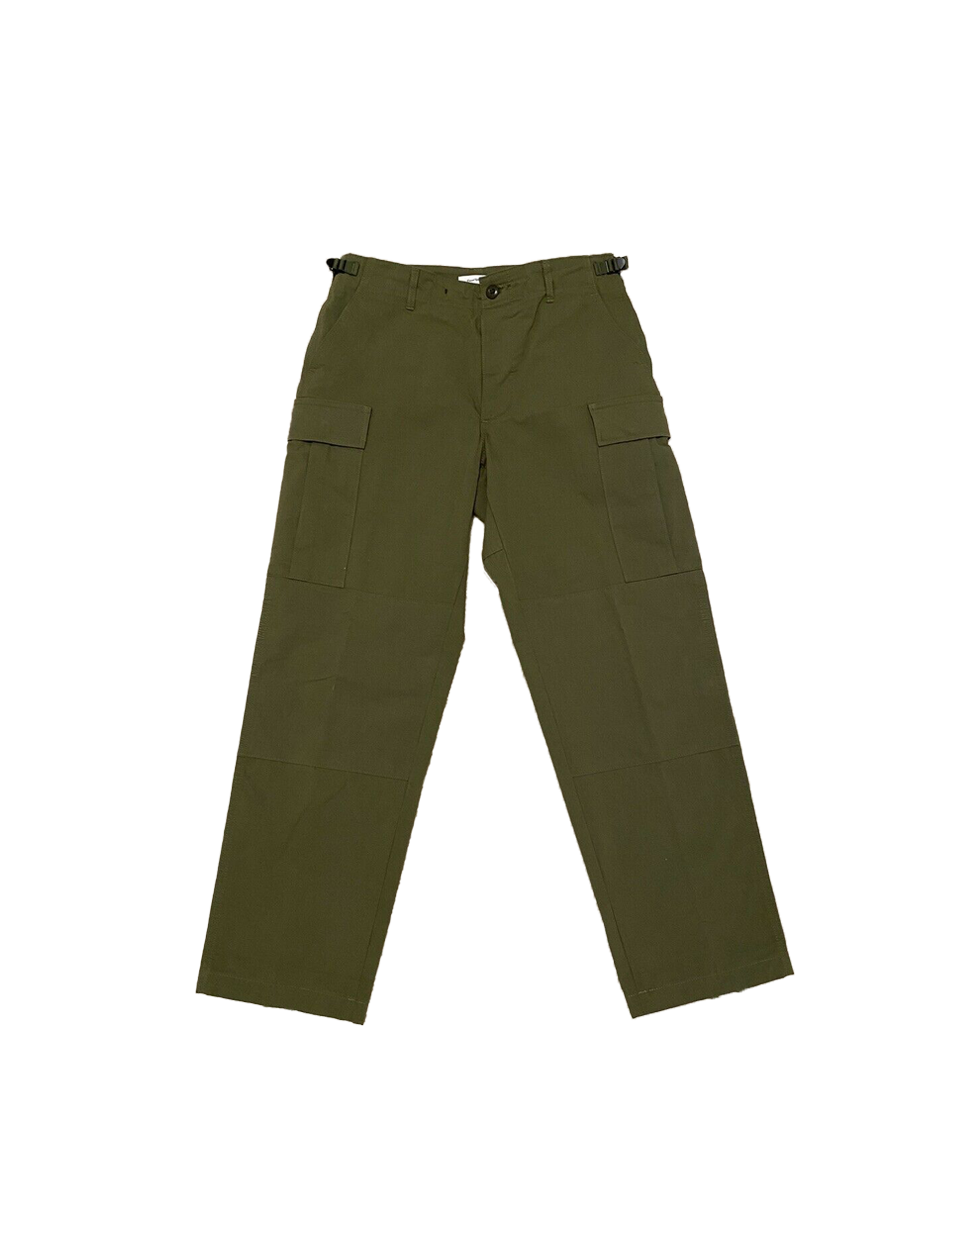 Wtaps MILL Trousers NYCO Ripstop Cargo Pants